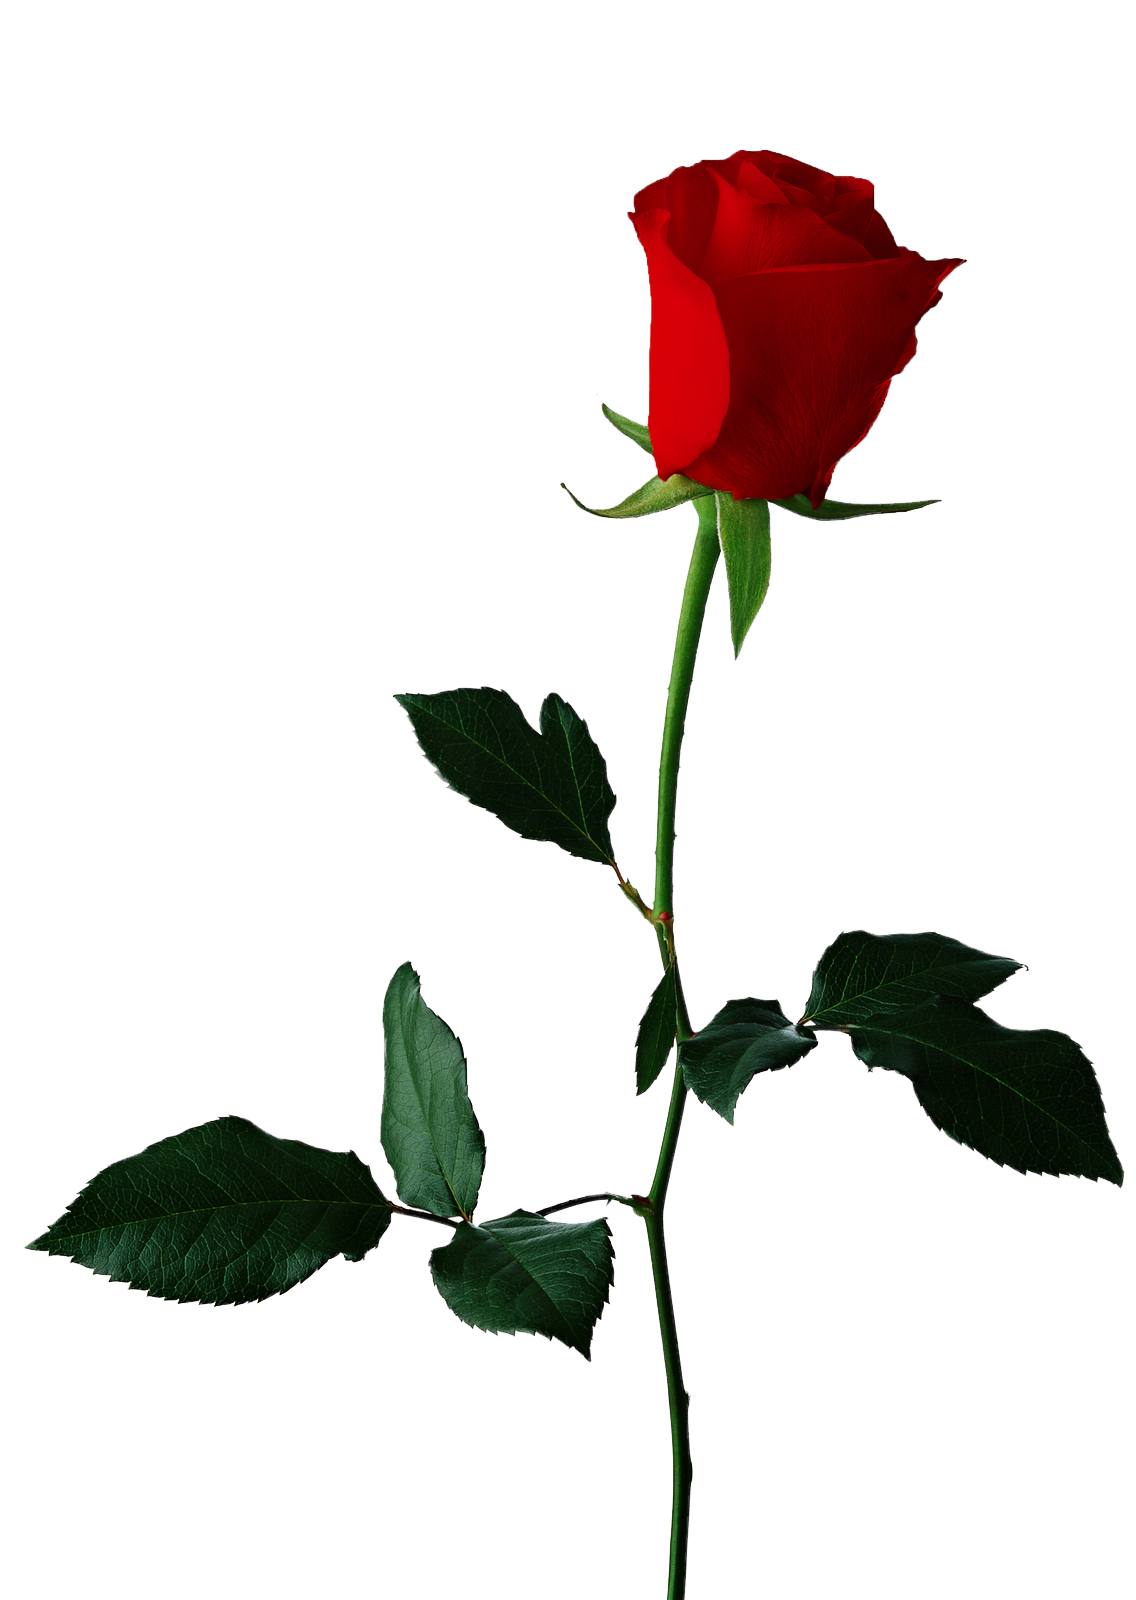 Rose clipart clear background. Single red transparent png